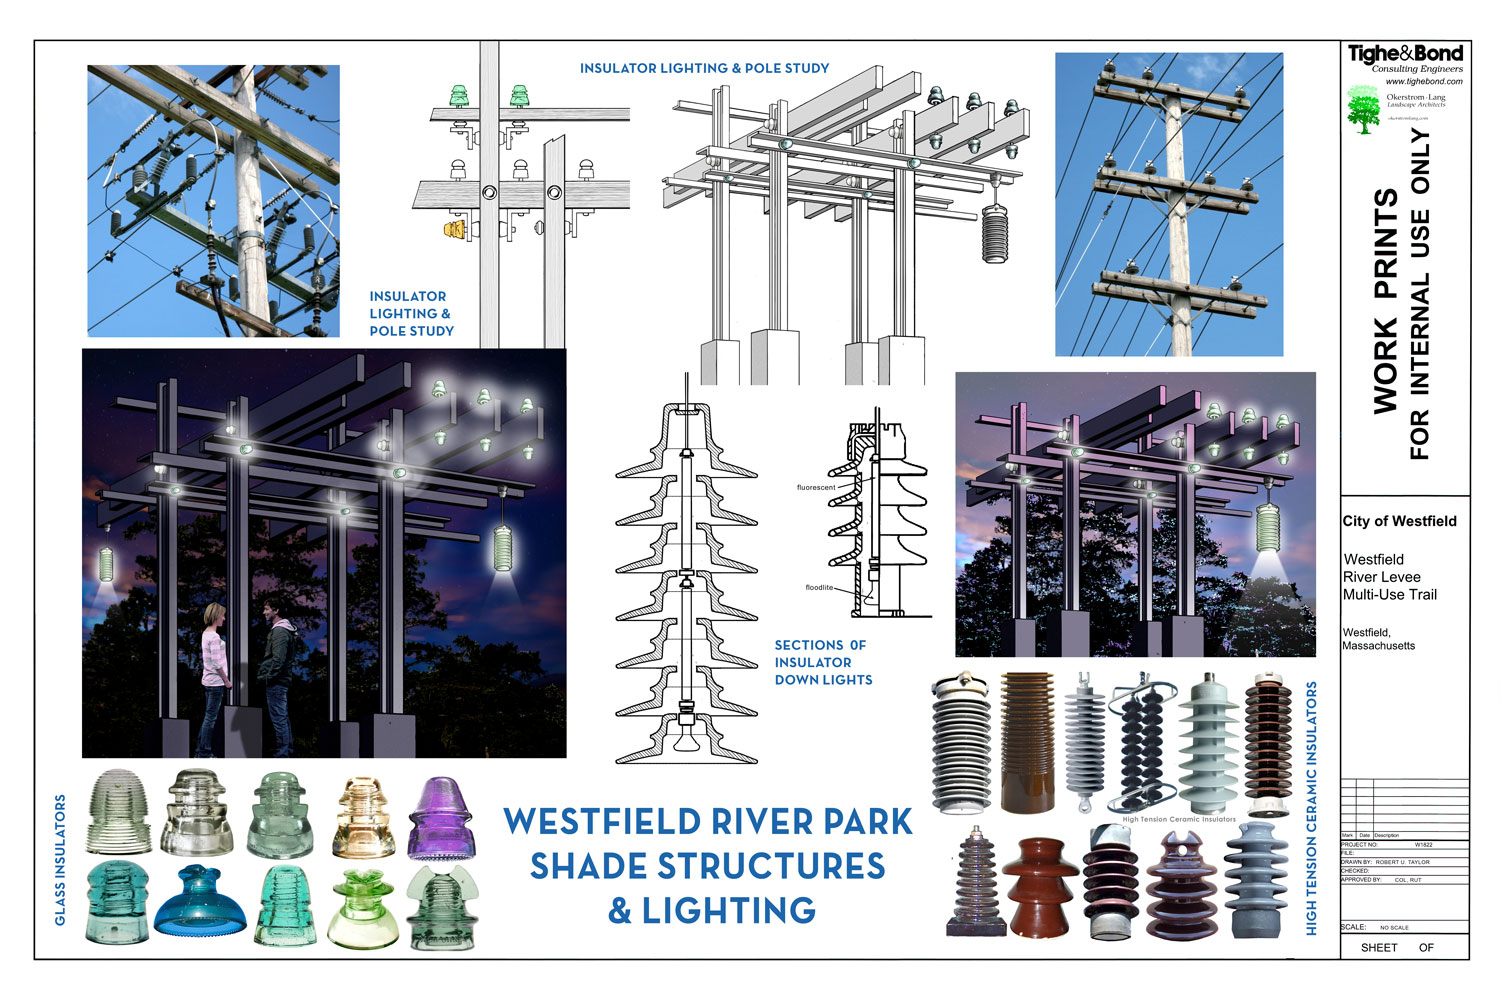 2014_08_25-Westfield-River-Park-shade-structures-and-lighting-by-OL-Ltd